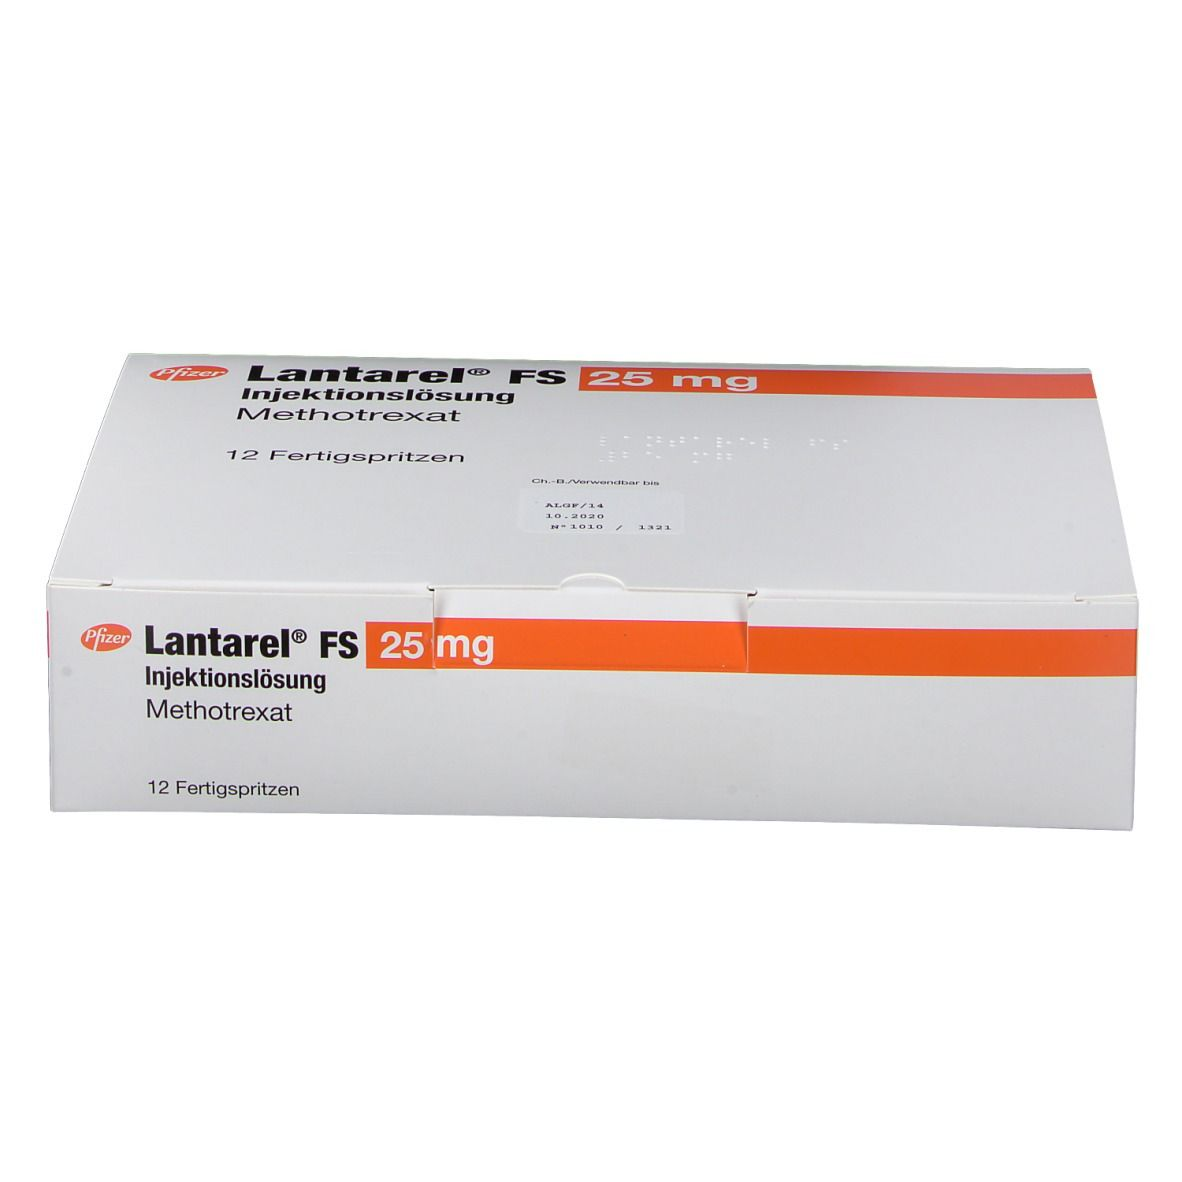 LANTAREL FS 25 mg 25 mg/ml